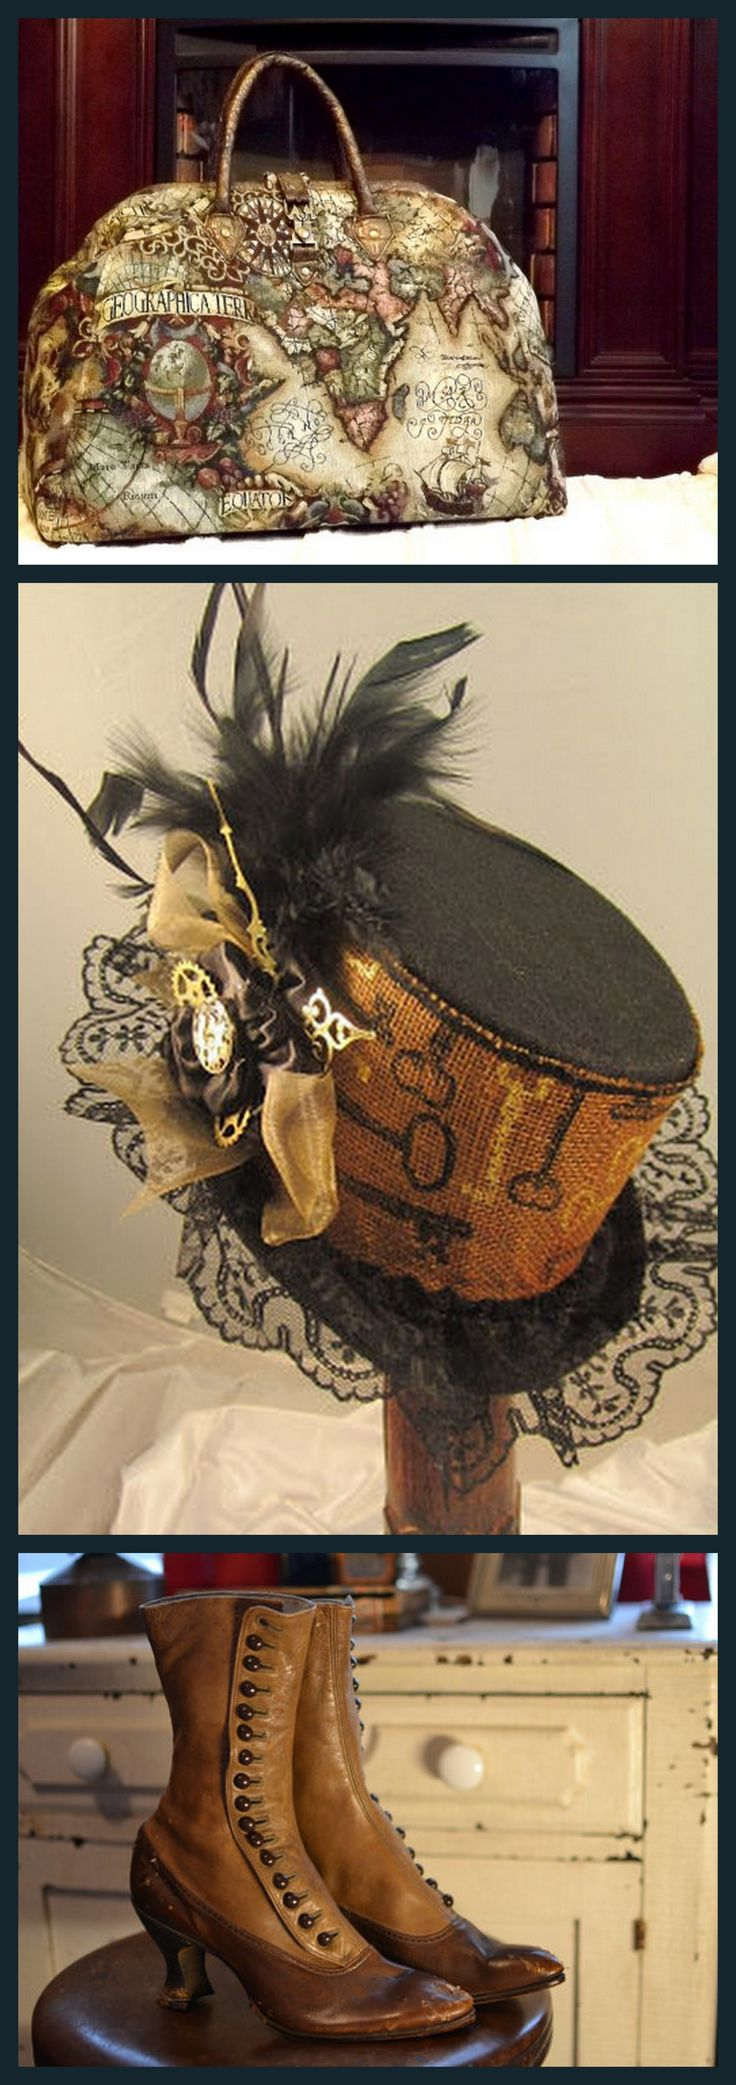 Time Traveler!  Find these delicious items here:  Mary Poppins Style Steampunk Carpet Bag:  https://www.etsy.com/listing/220868692/mary-poppins-style-steampunk-carpet-bag  Steampunk Top Hat:  https://www.etsy.com/listing/246850081/steampunk-top-hats-steampunk-shop  Edwardian Steampunk Boots:  https://www.etsy.com/listing/215528285/edwardian-steampunk-ladies-button-up-two